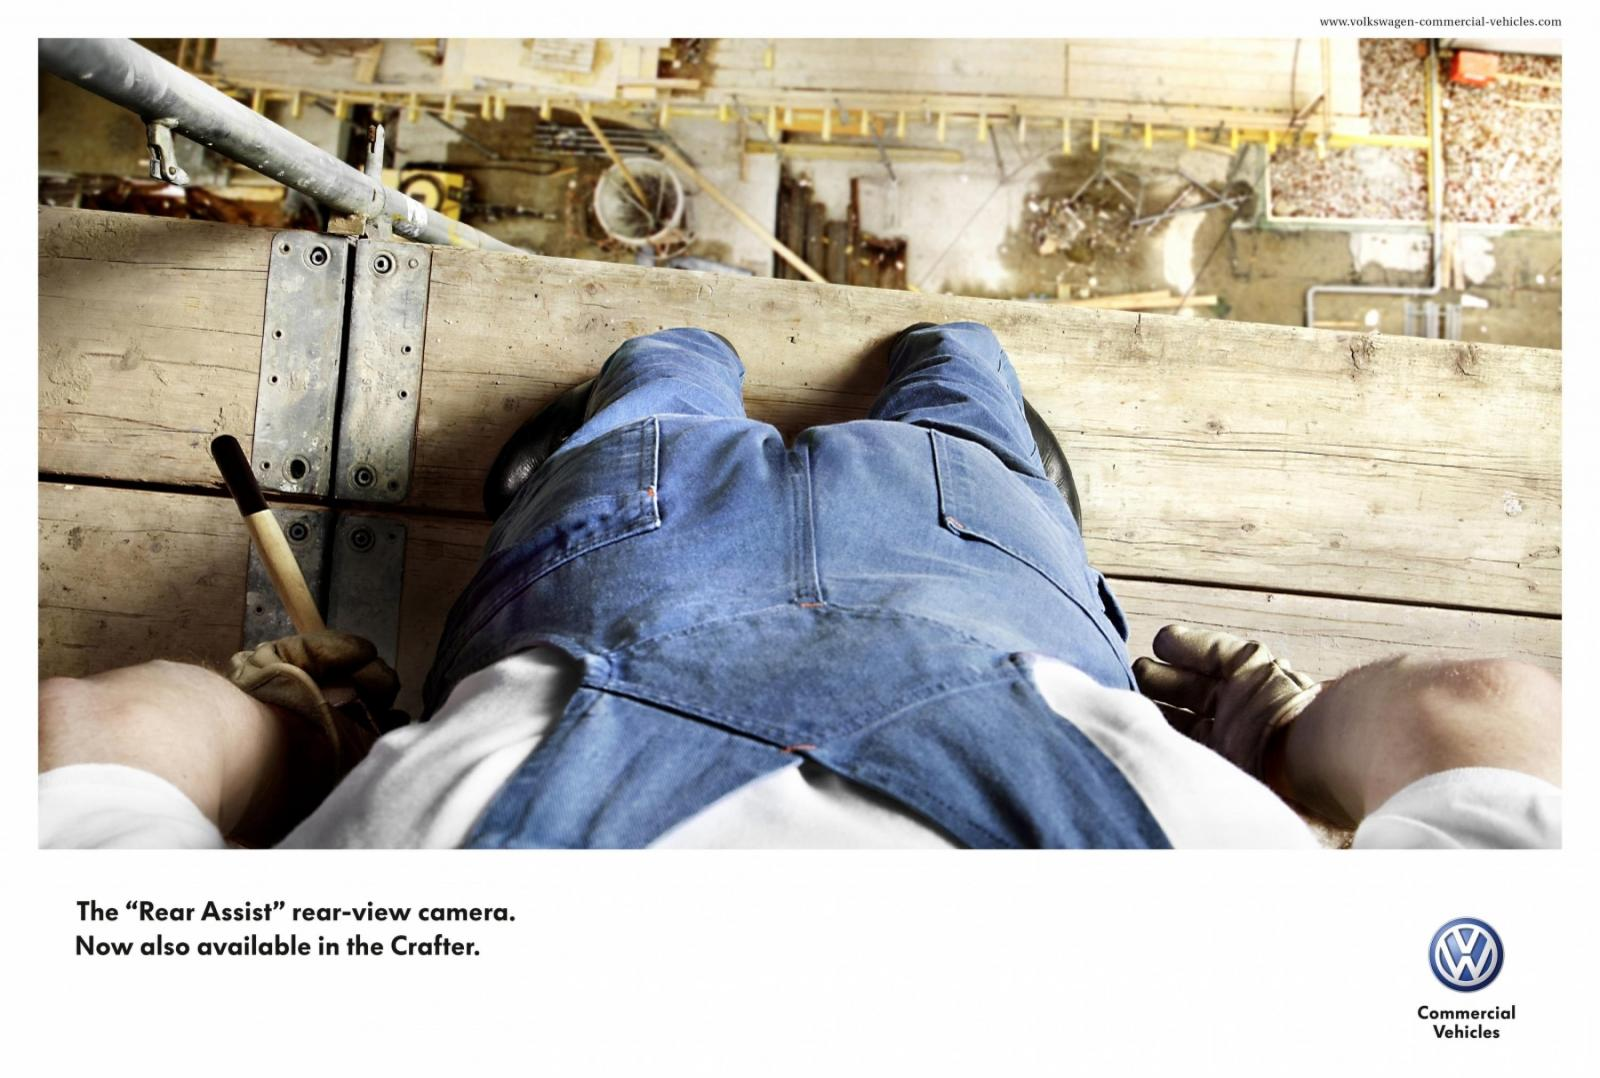 Volkswagen Print Advert By Grabarz & Partner: Scaffolding | Ads of ...